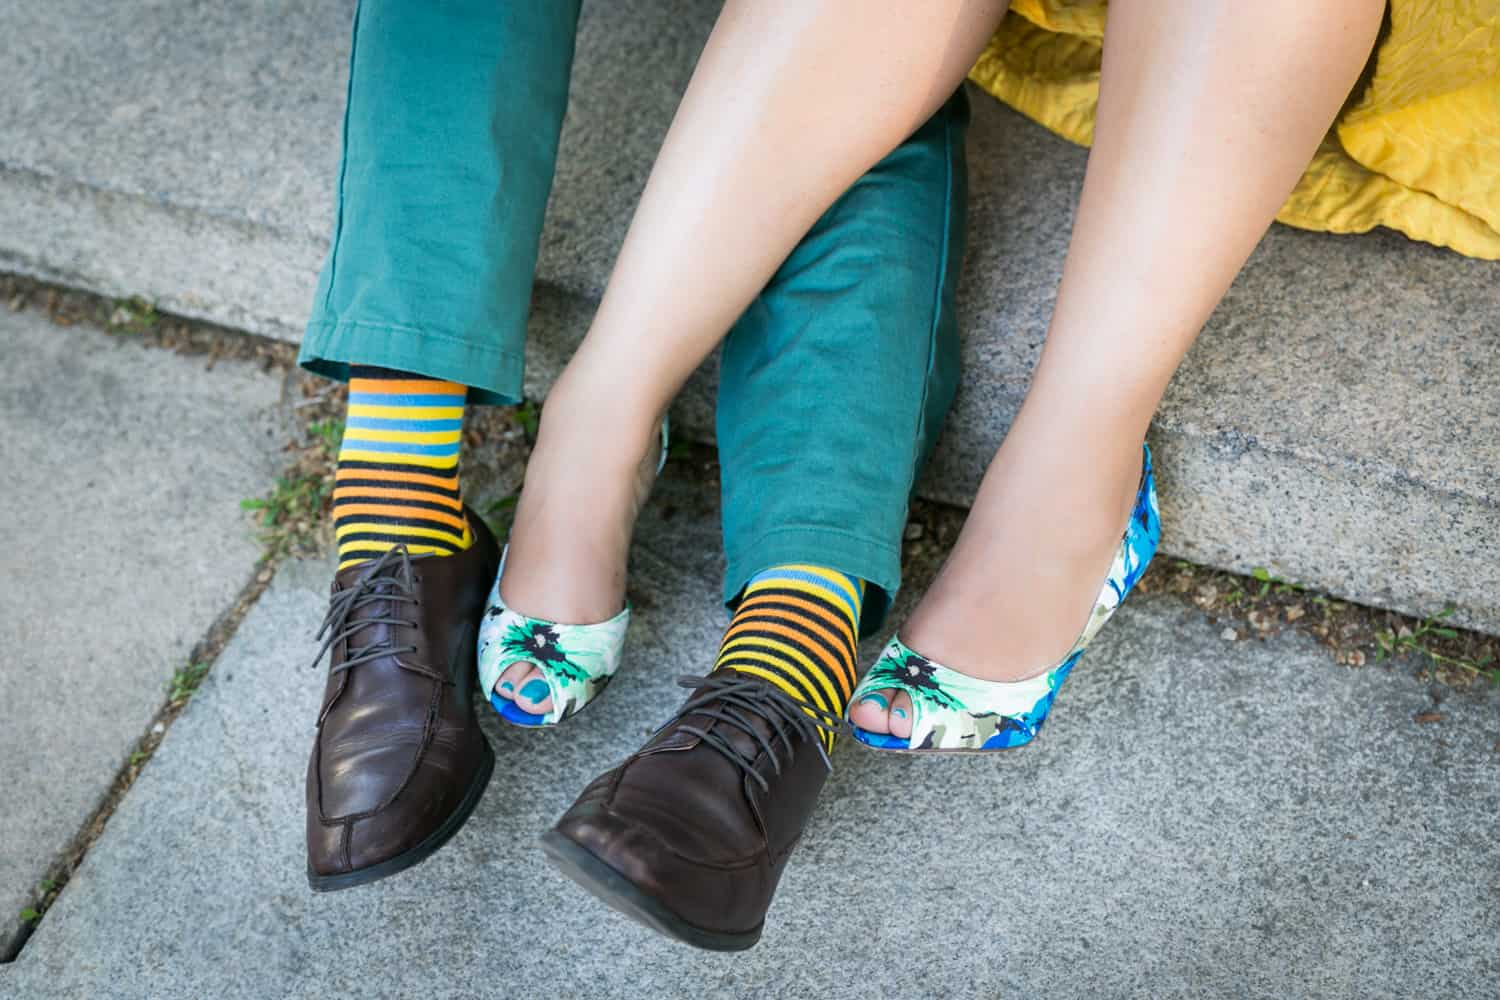 Close up on woman wearing colorful floral heels and man wearing colorful socks and black shoes